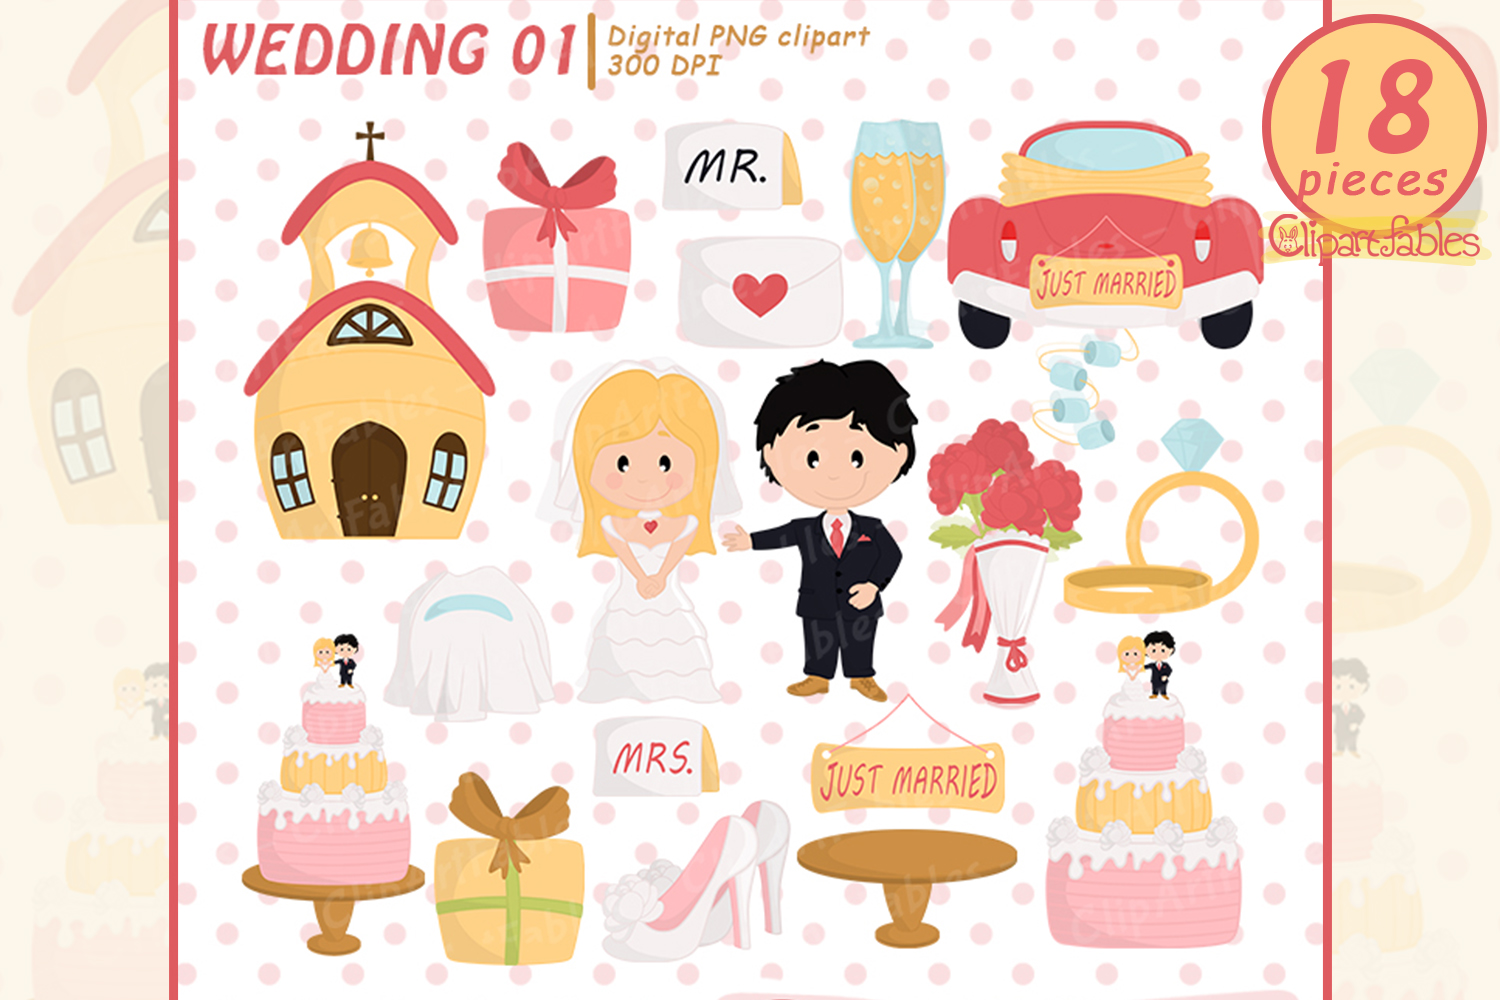 Wedding clipart, Just married clip art, LOVE art - INSTANT example image 1